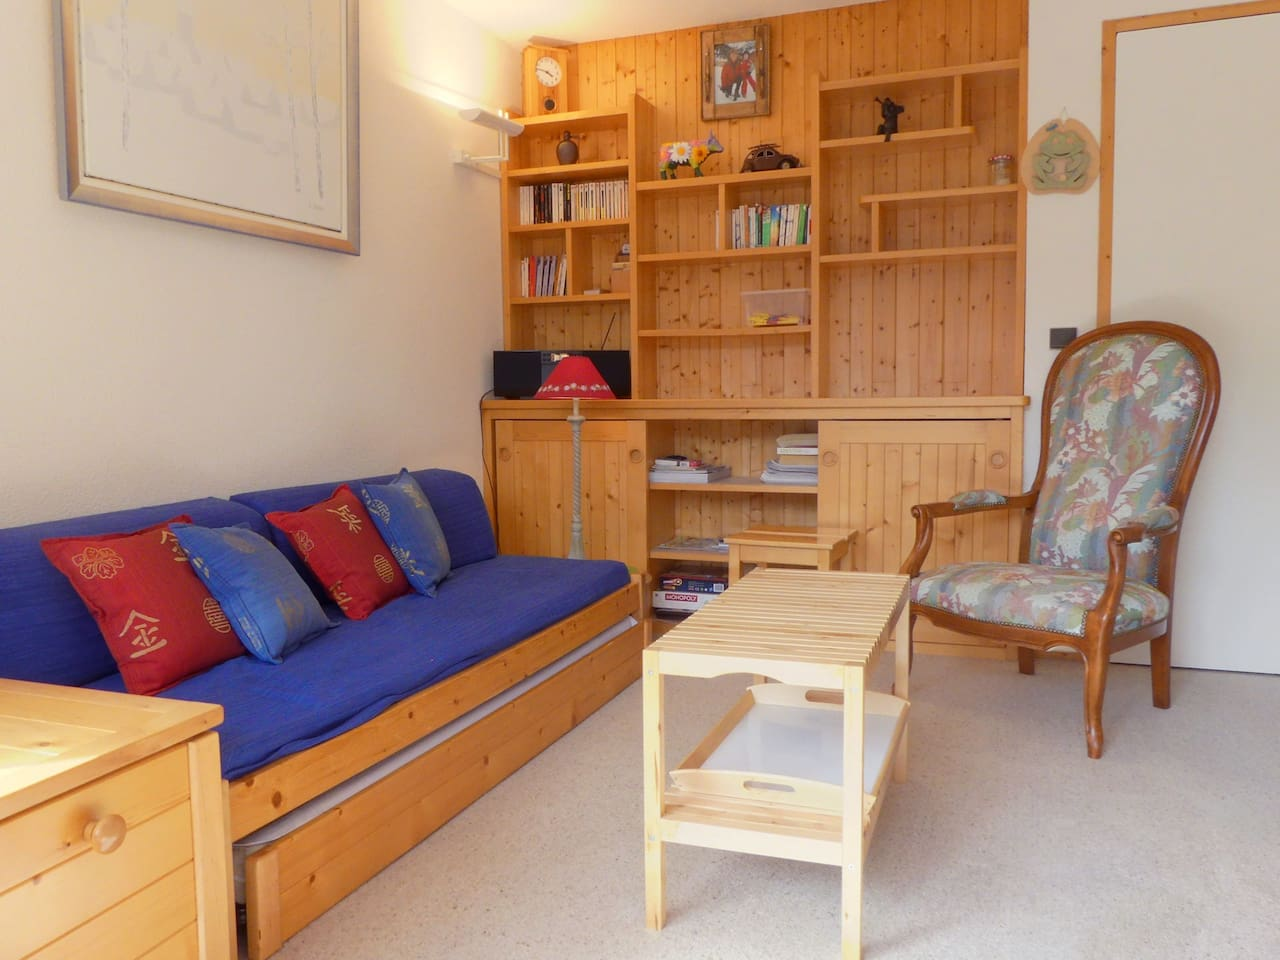 APPARTEMENT BIEN AGENCE IDEAL POUR UNE FAMILLE, PLEIN SUD / CONVENIENT LAY-OUT, IDEAL FOR A FAMILY AND SOUTH-FACING